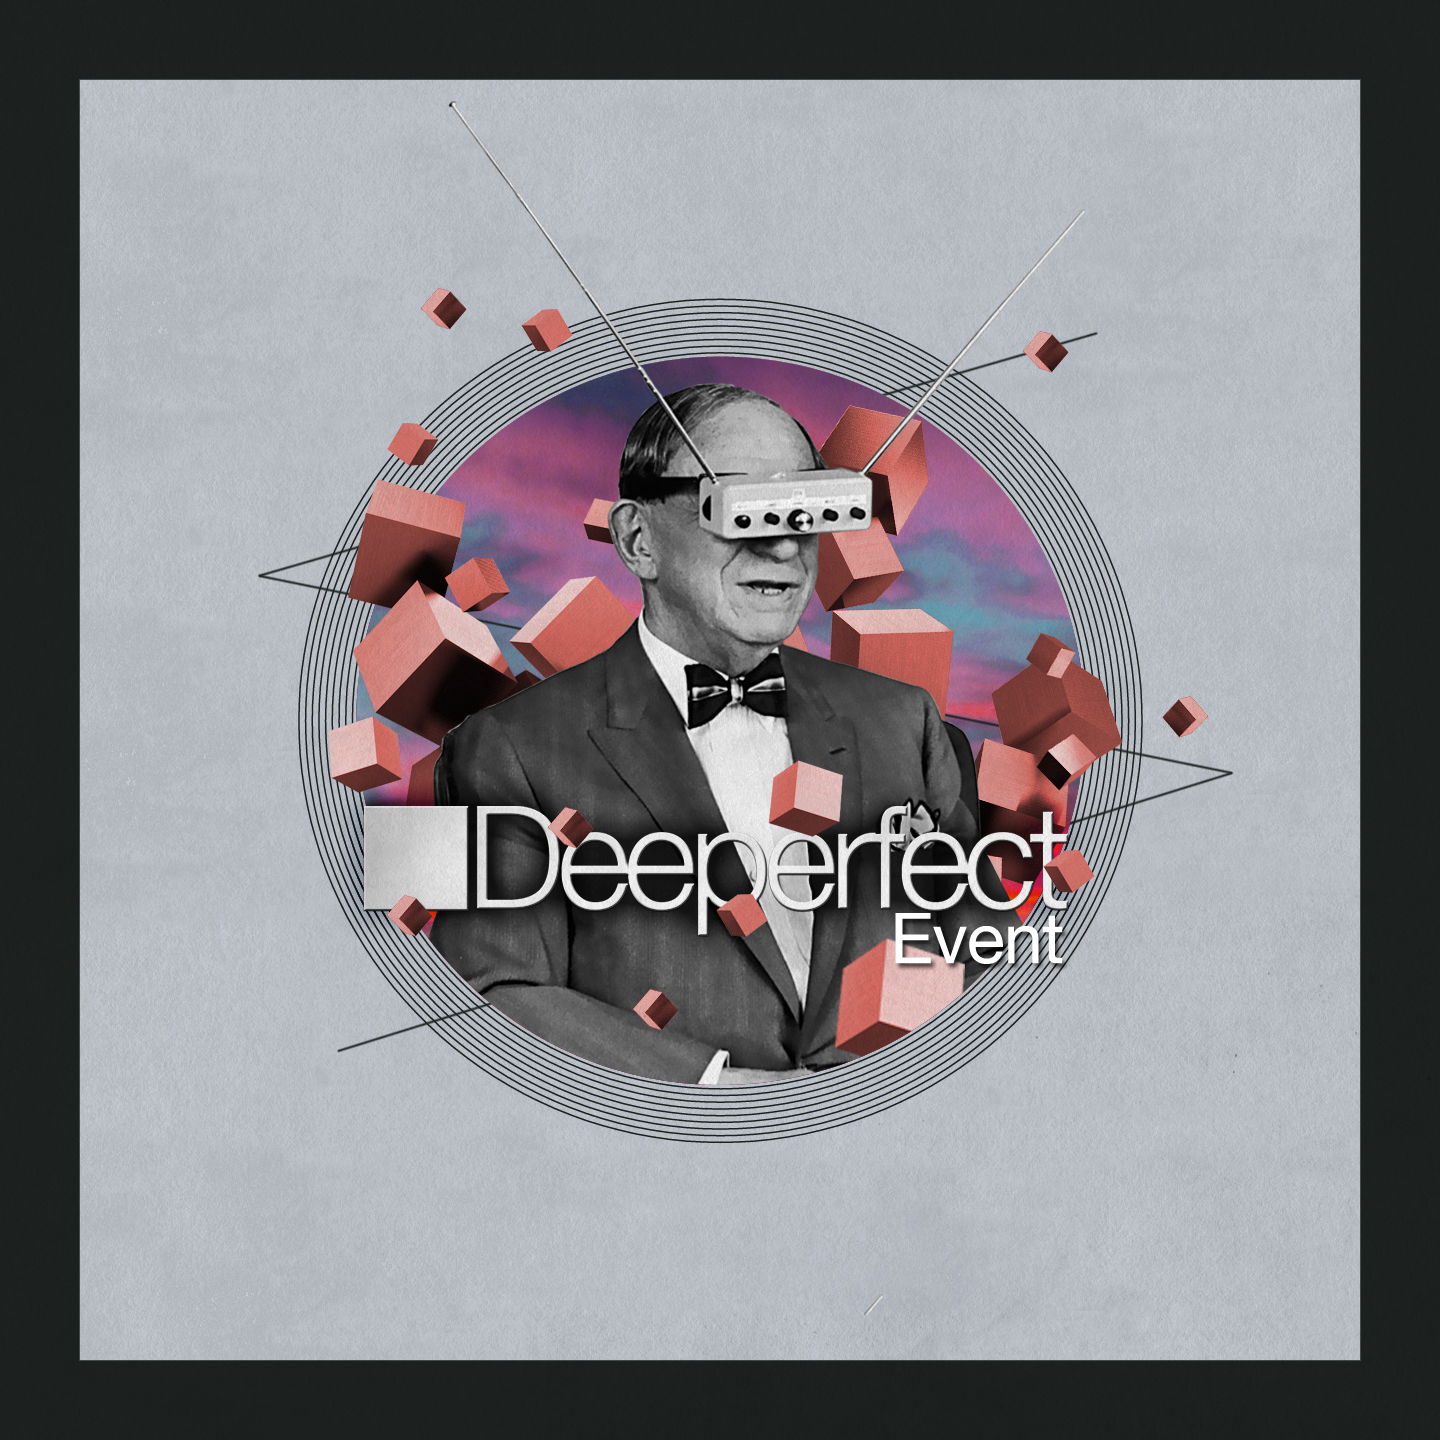 Deeperfect Event